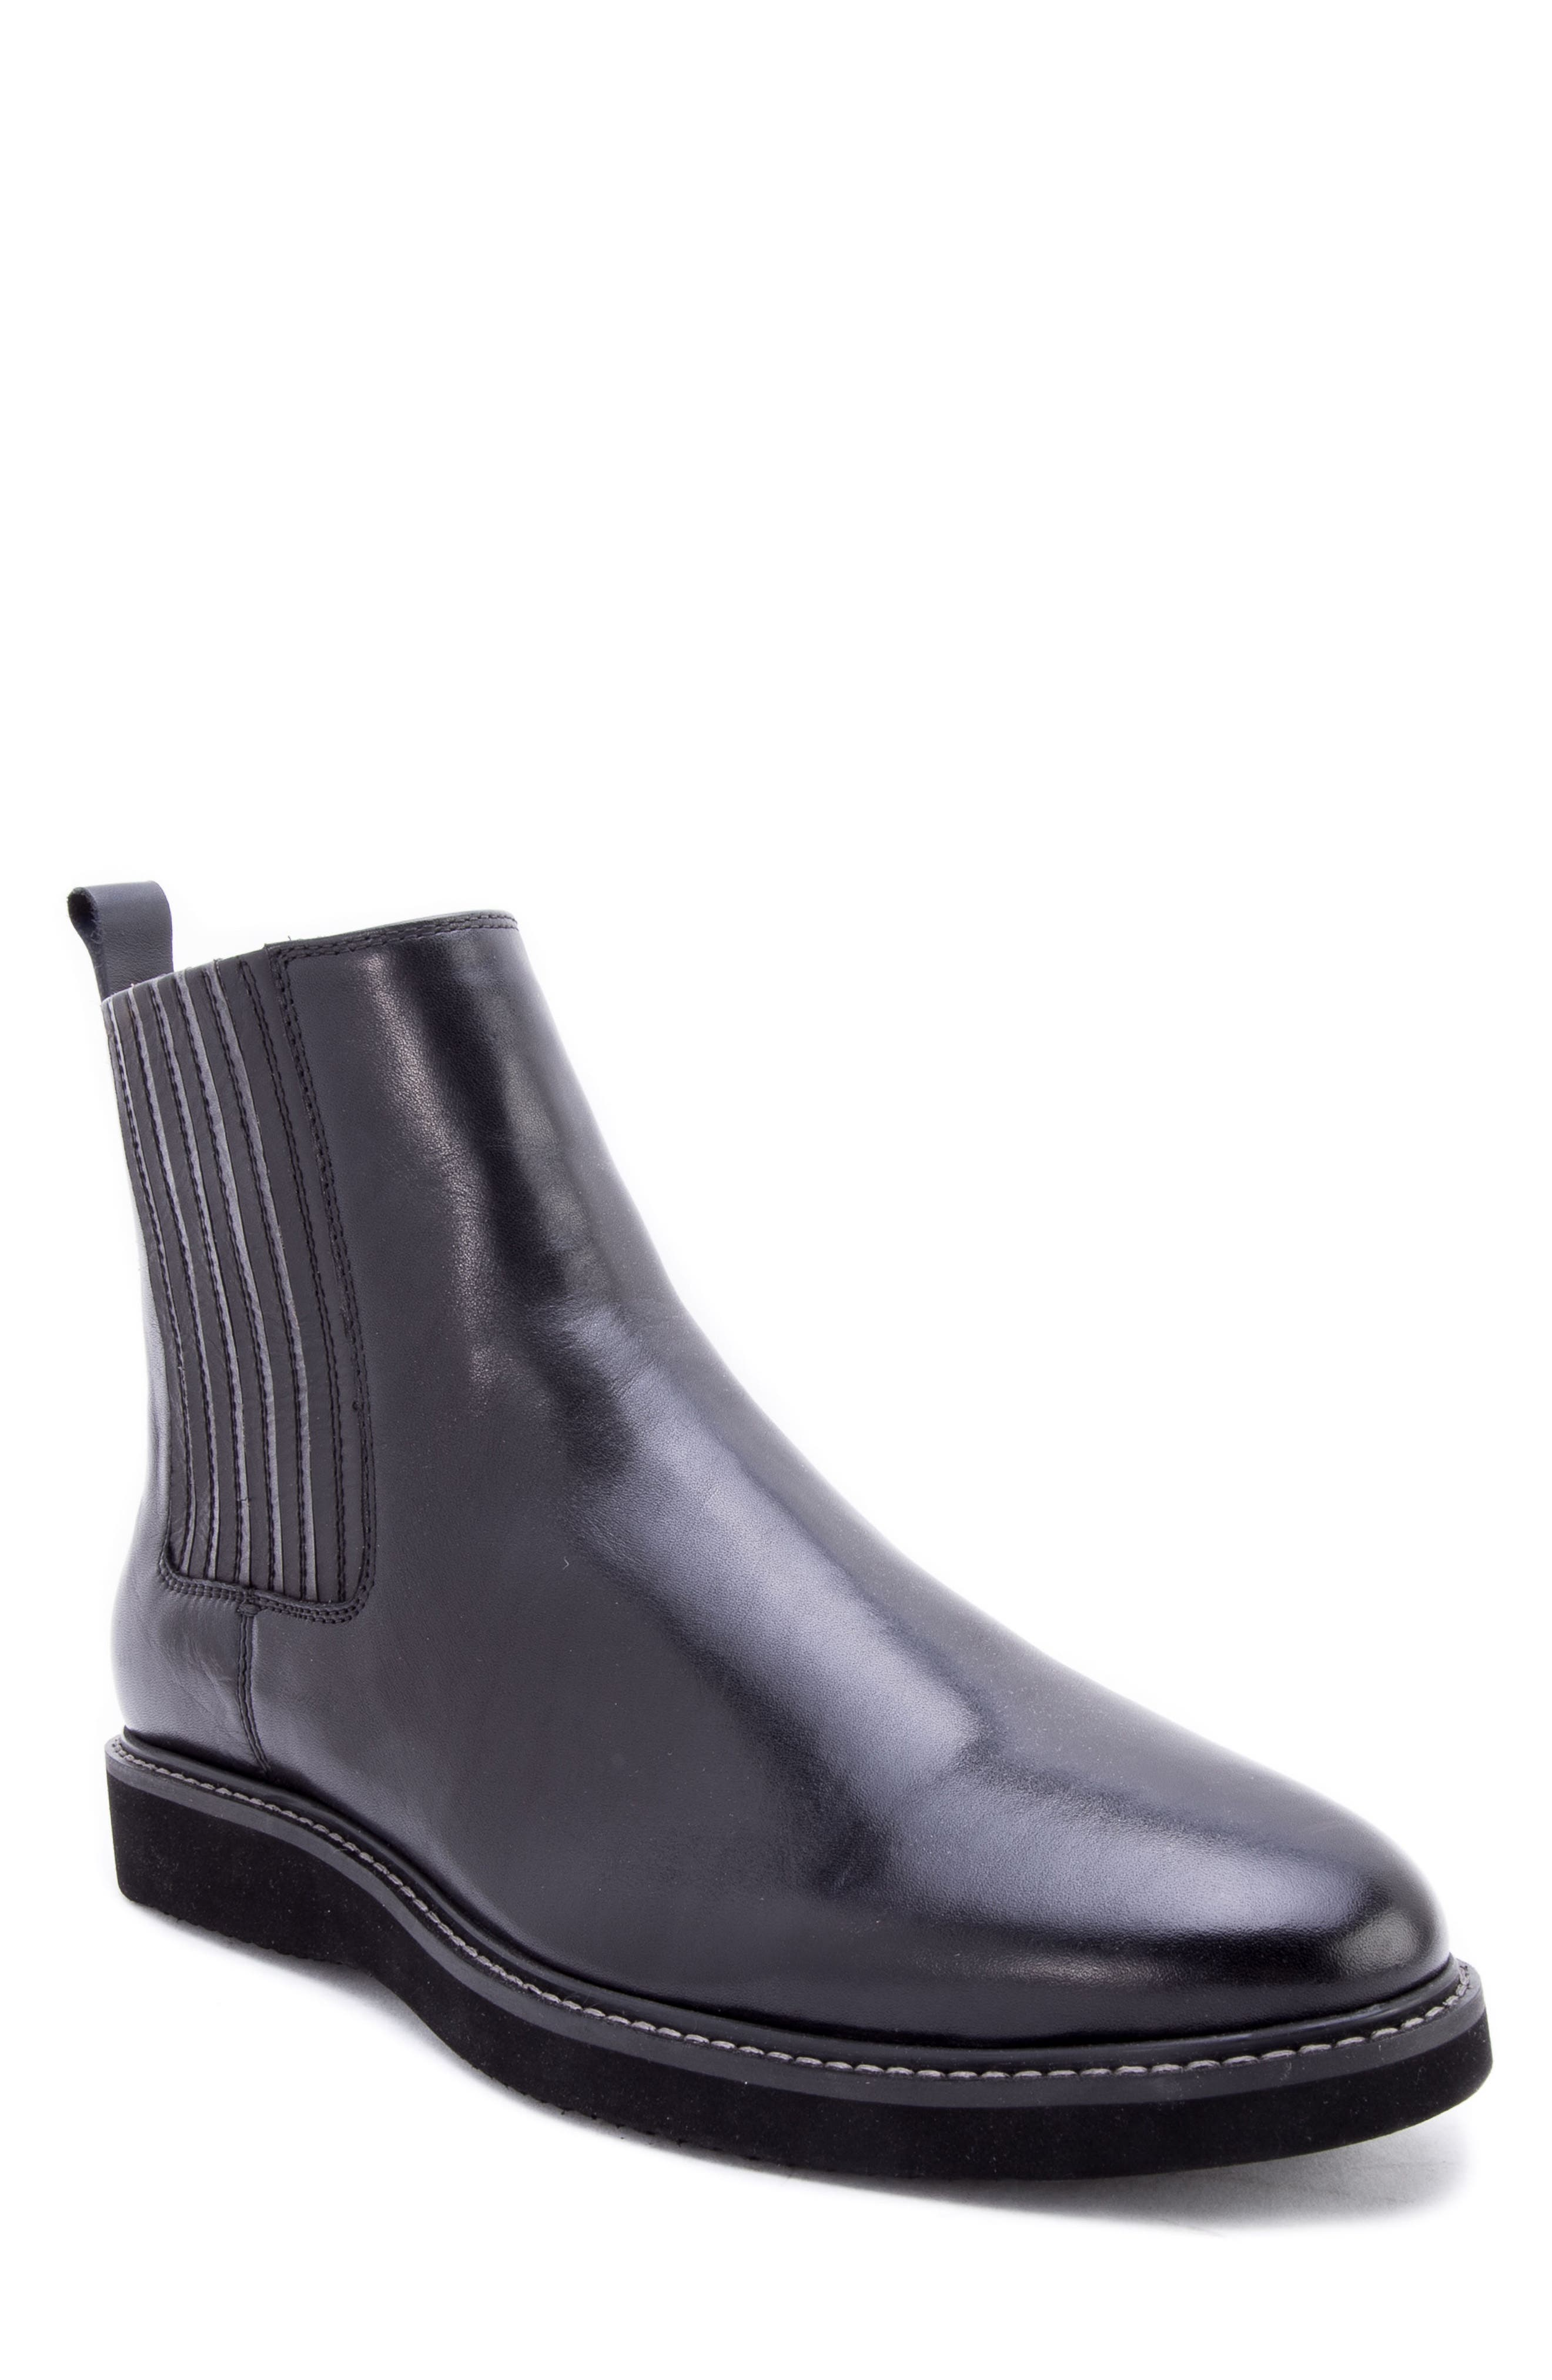 Warlow Chelsea Boot,                             Main thumbnail 1, color,                             BLACK LEATHER